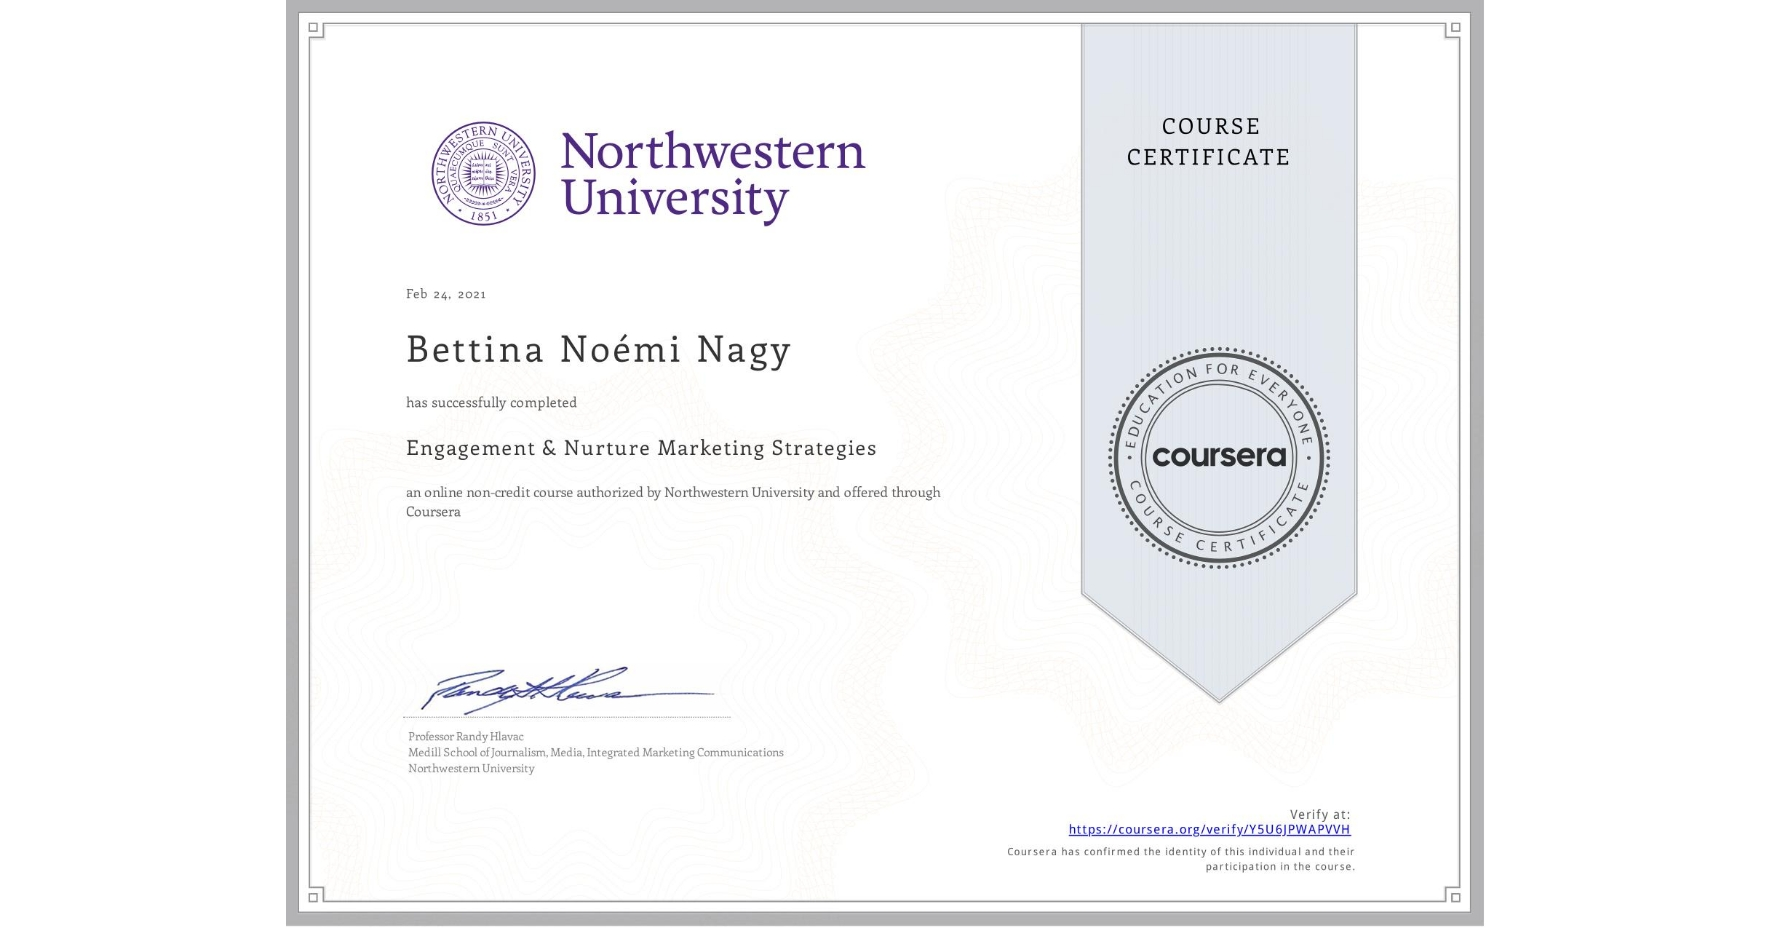 View certificate for Bettina Noémi Nagy, Engagement & Nurture Marketing Strategies, an online non-credit course authorized by Northwestern University and offered through Coursera